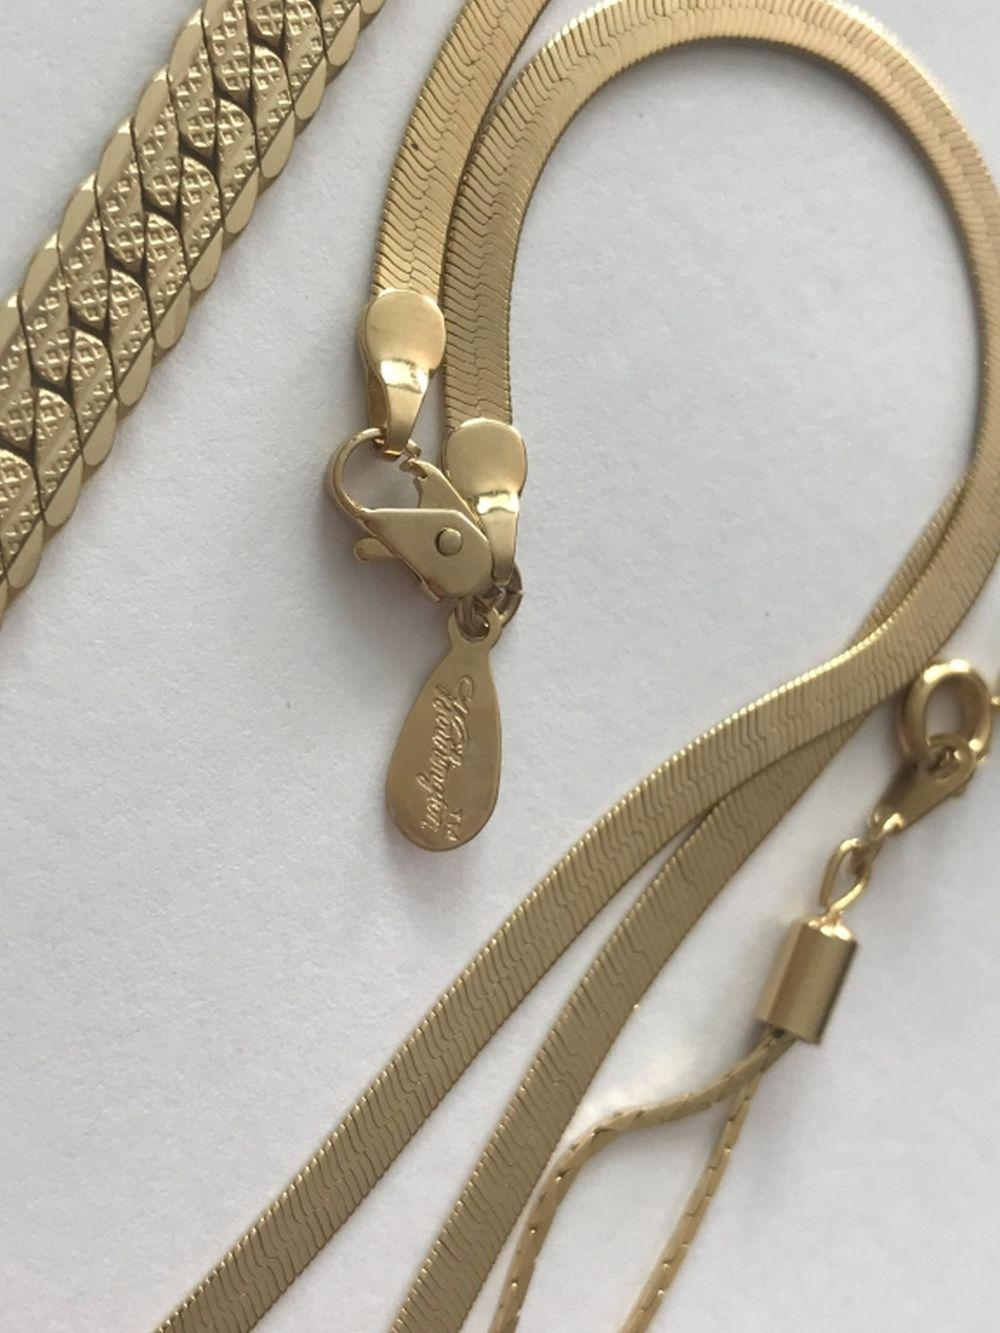 3 GOLD TONED NECKLACES (1 W/ MAKER MARK)